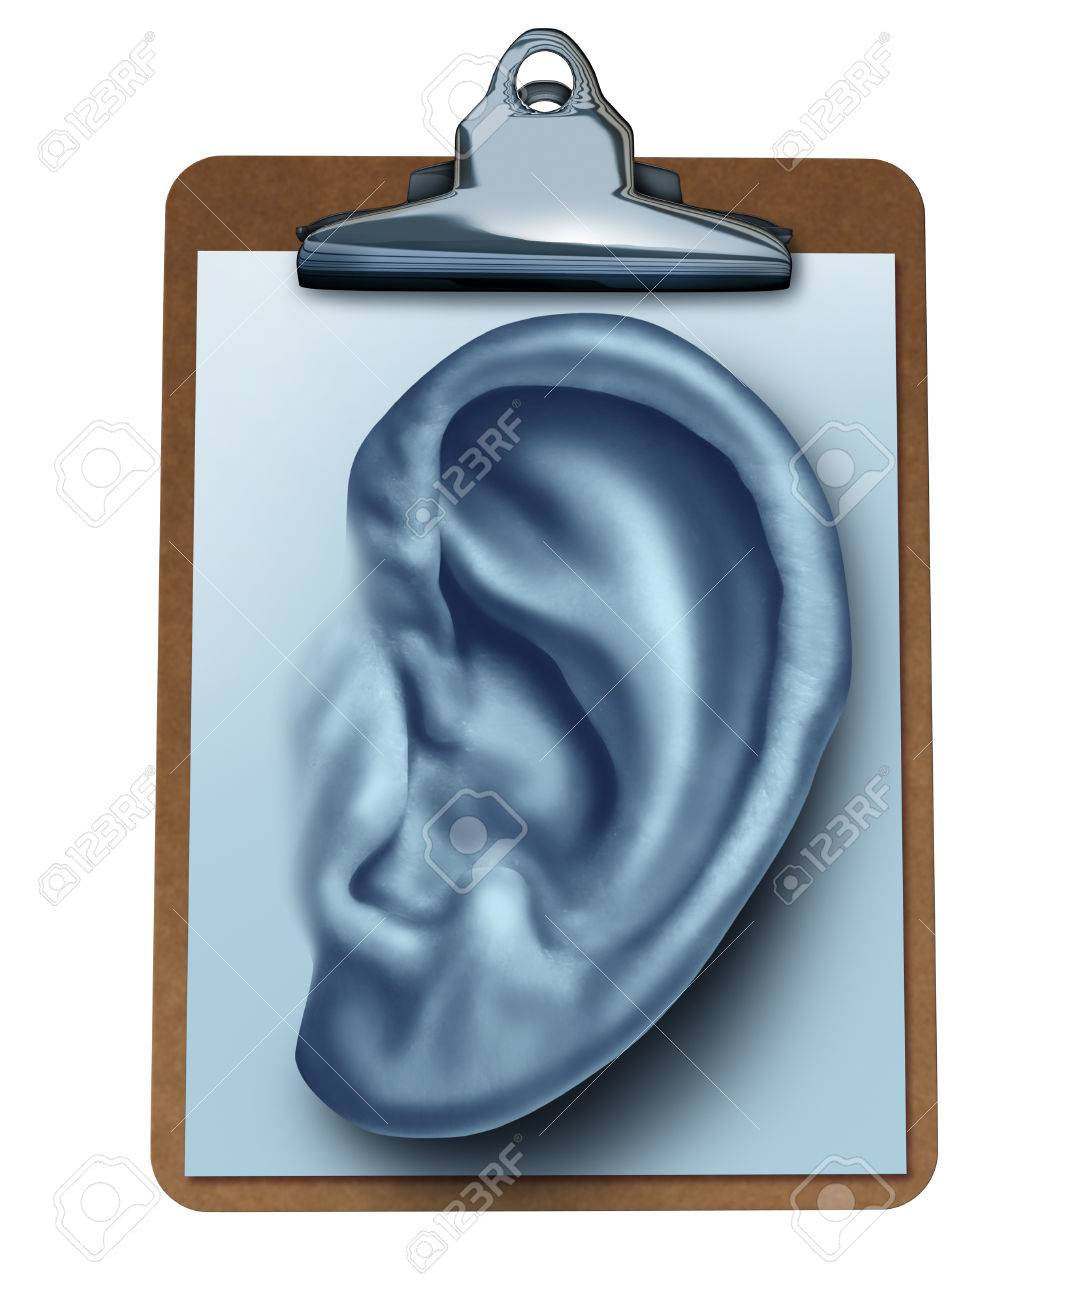 Customer Survey business concept as an office clipboard with a note paper in the shape of a human ear as a metaphor for listening to the clients opinion and satisfaction feedback found in reviews and service ratings isolated on white - 22986364